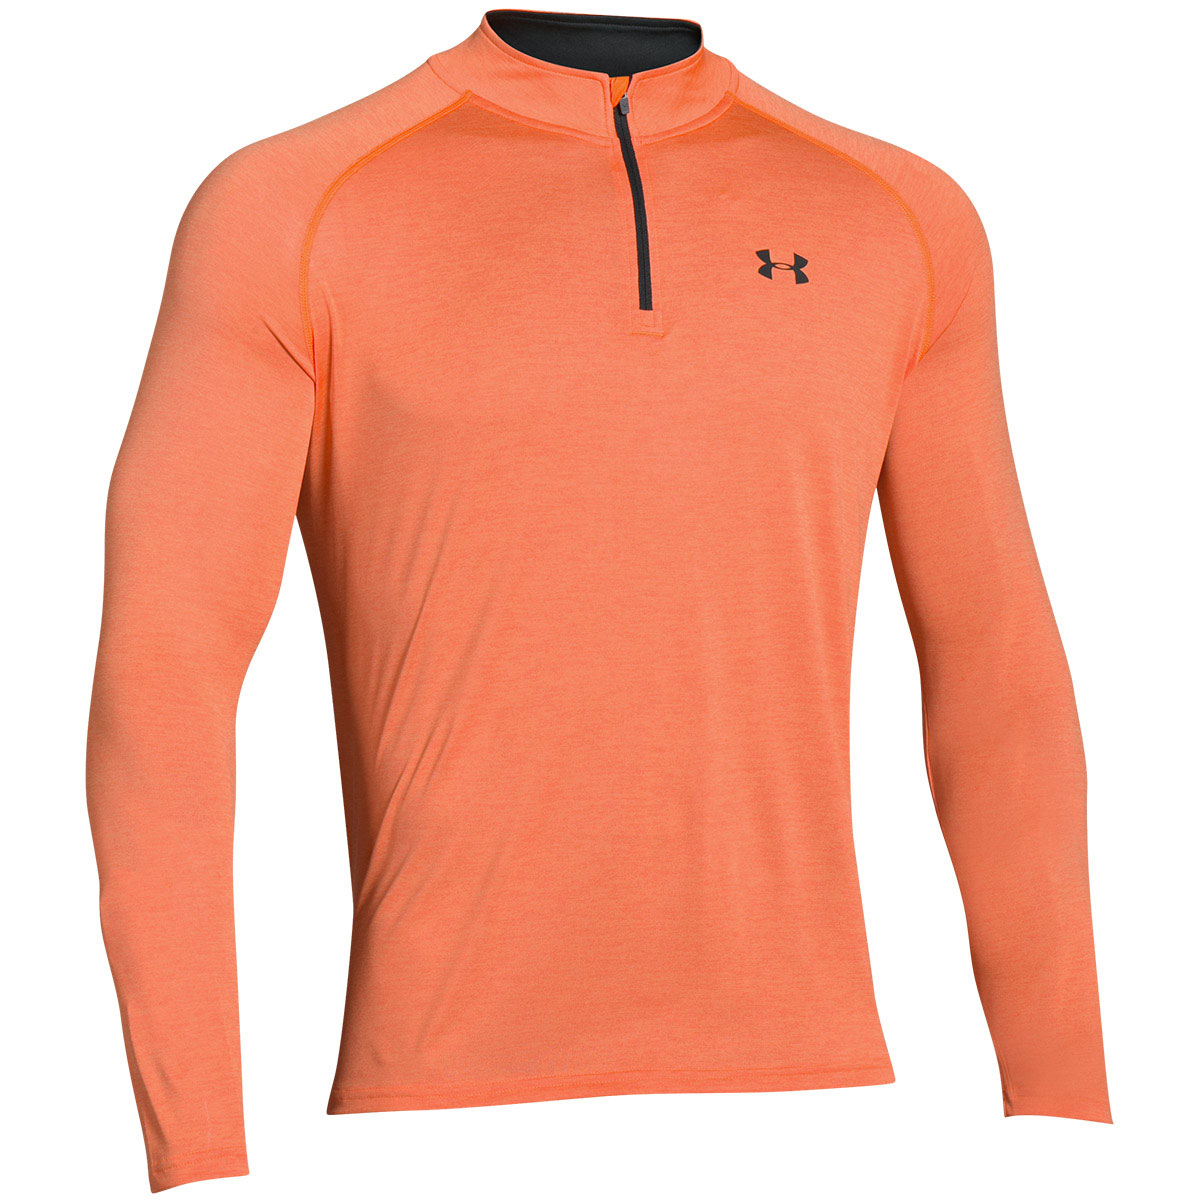 Under-Armour-Mens-UA-Tech-1-4-Zip-Long-Sleeve-Top-Workout-Layer-27-OFF-RRP thumbnail 14